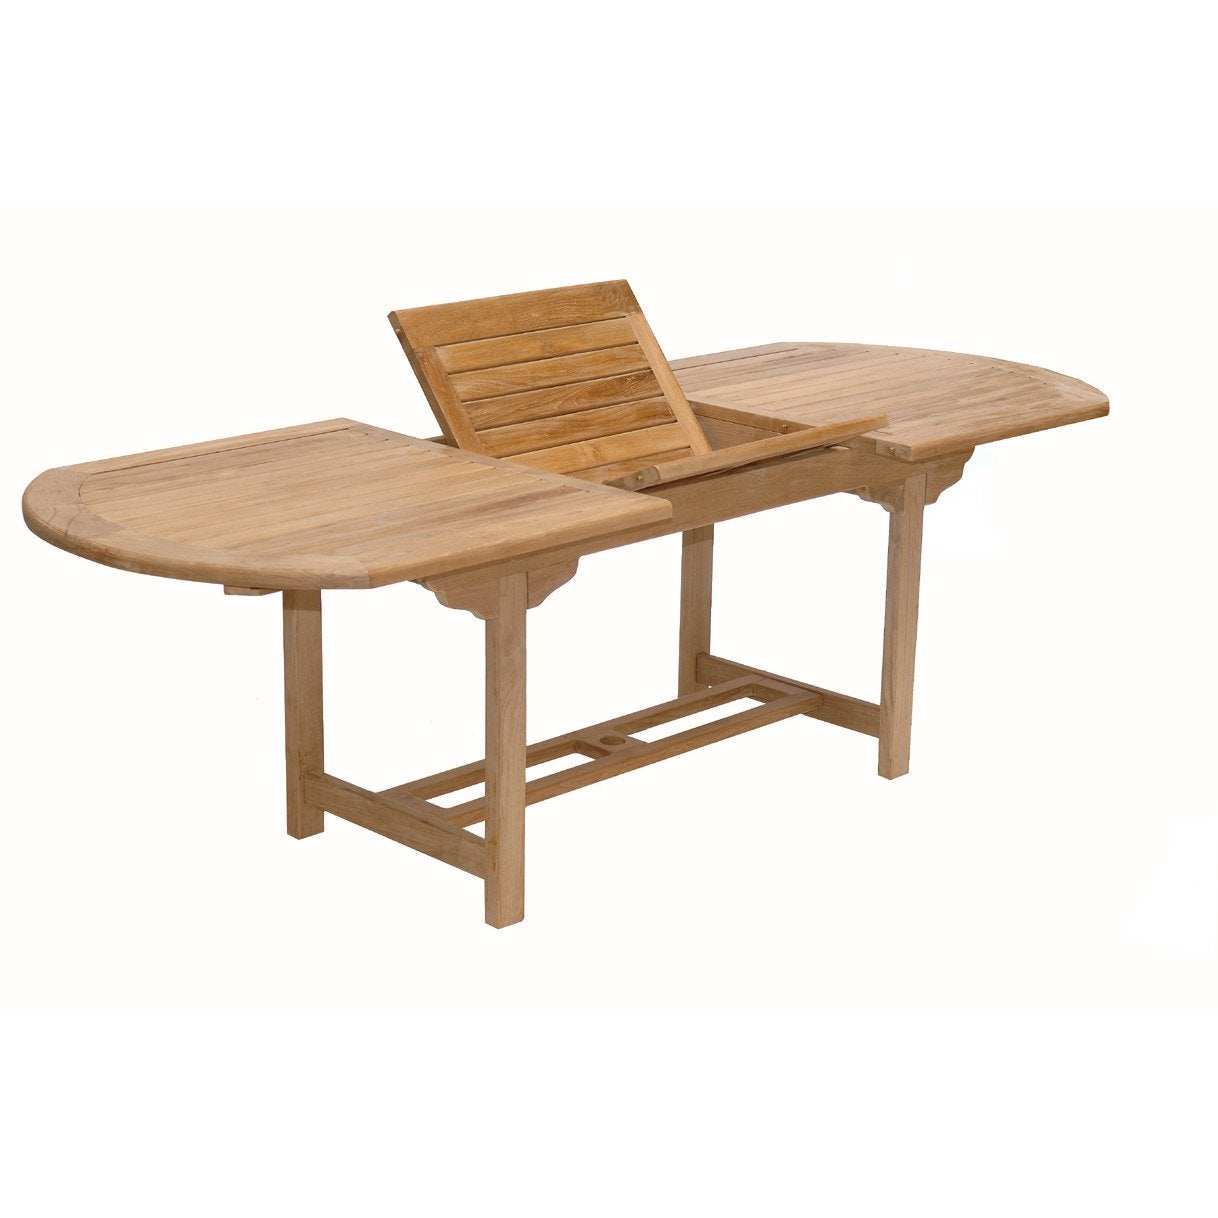 Table de jardin azur ovale naturel 8 personnes leroy merlin for Table de jardin 8 personnes